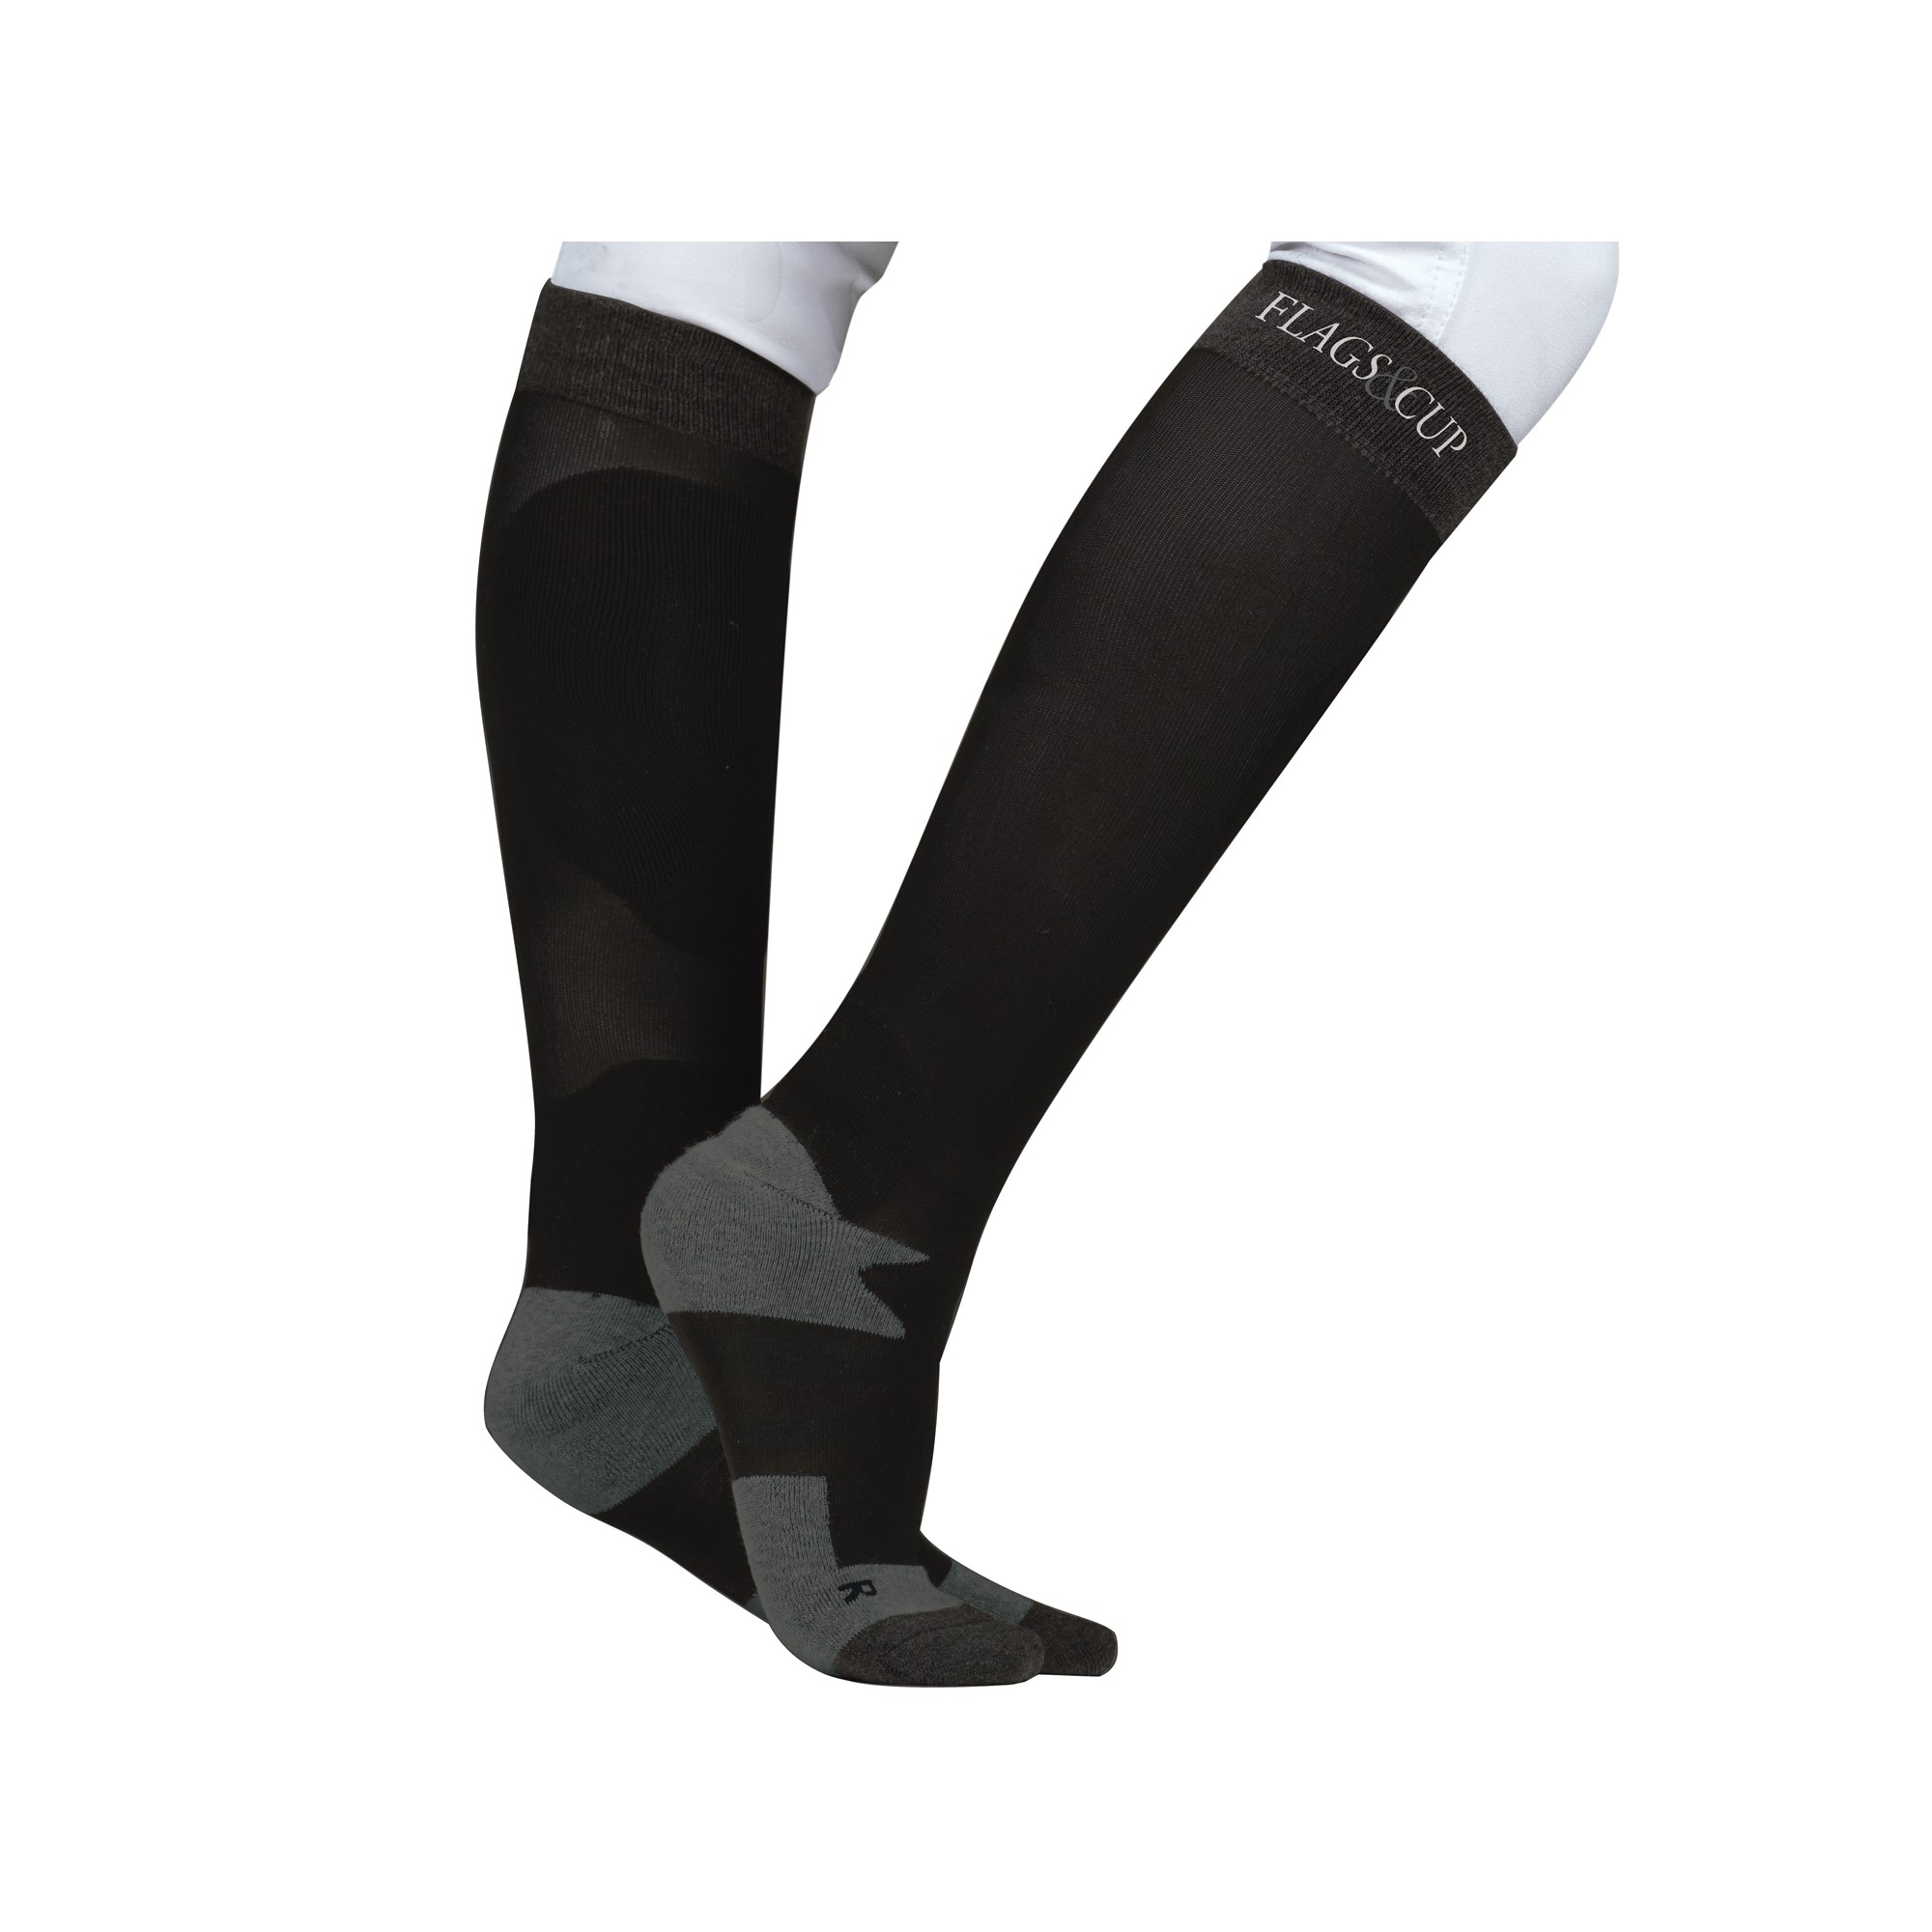 chaussettes-cartagena-flags-and-cup-noir-anthracite-900305